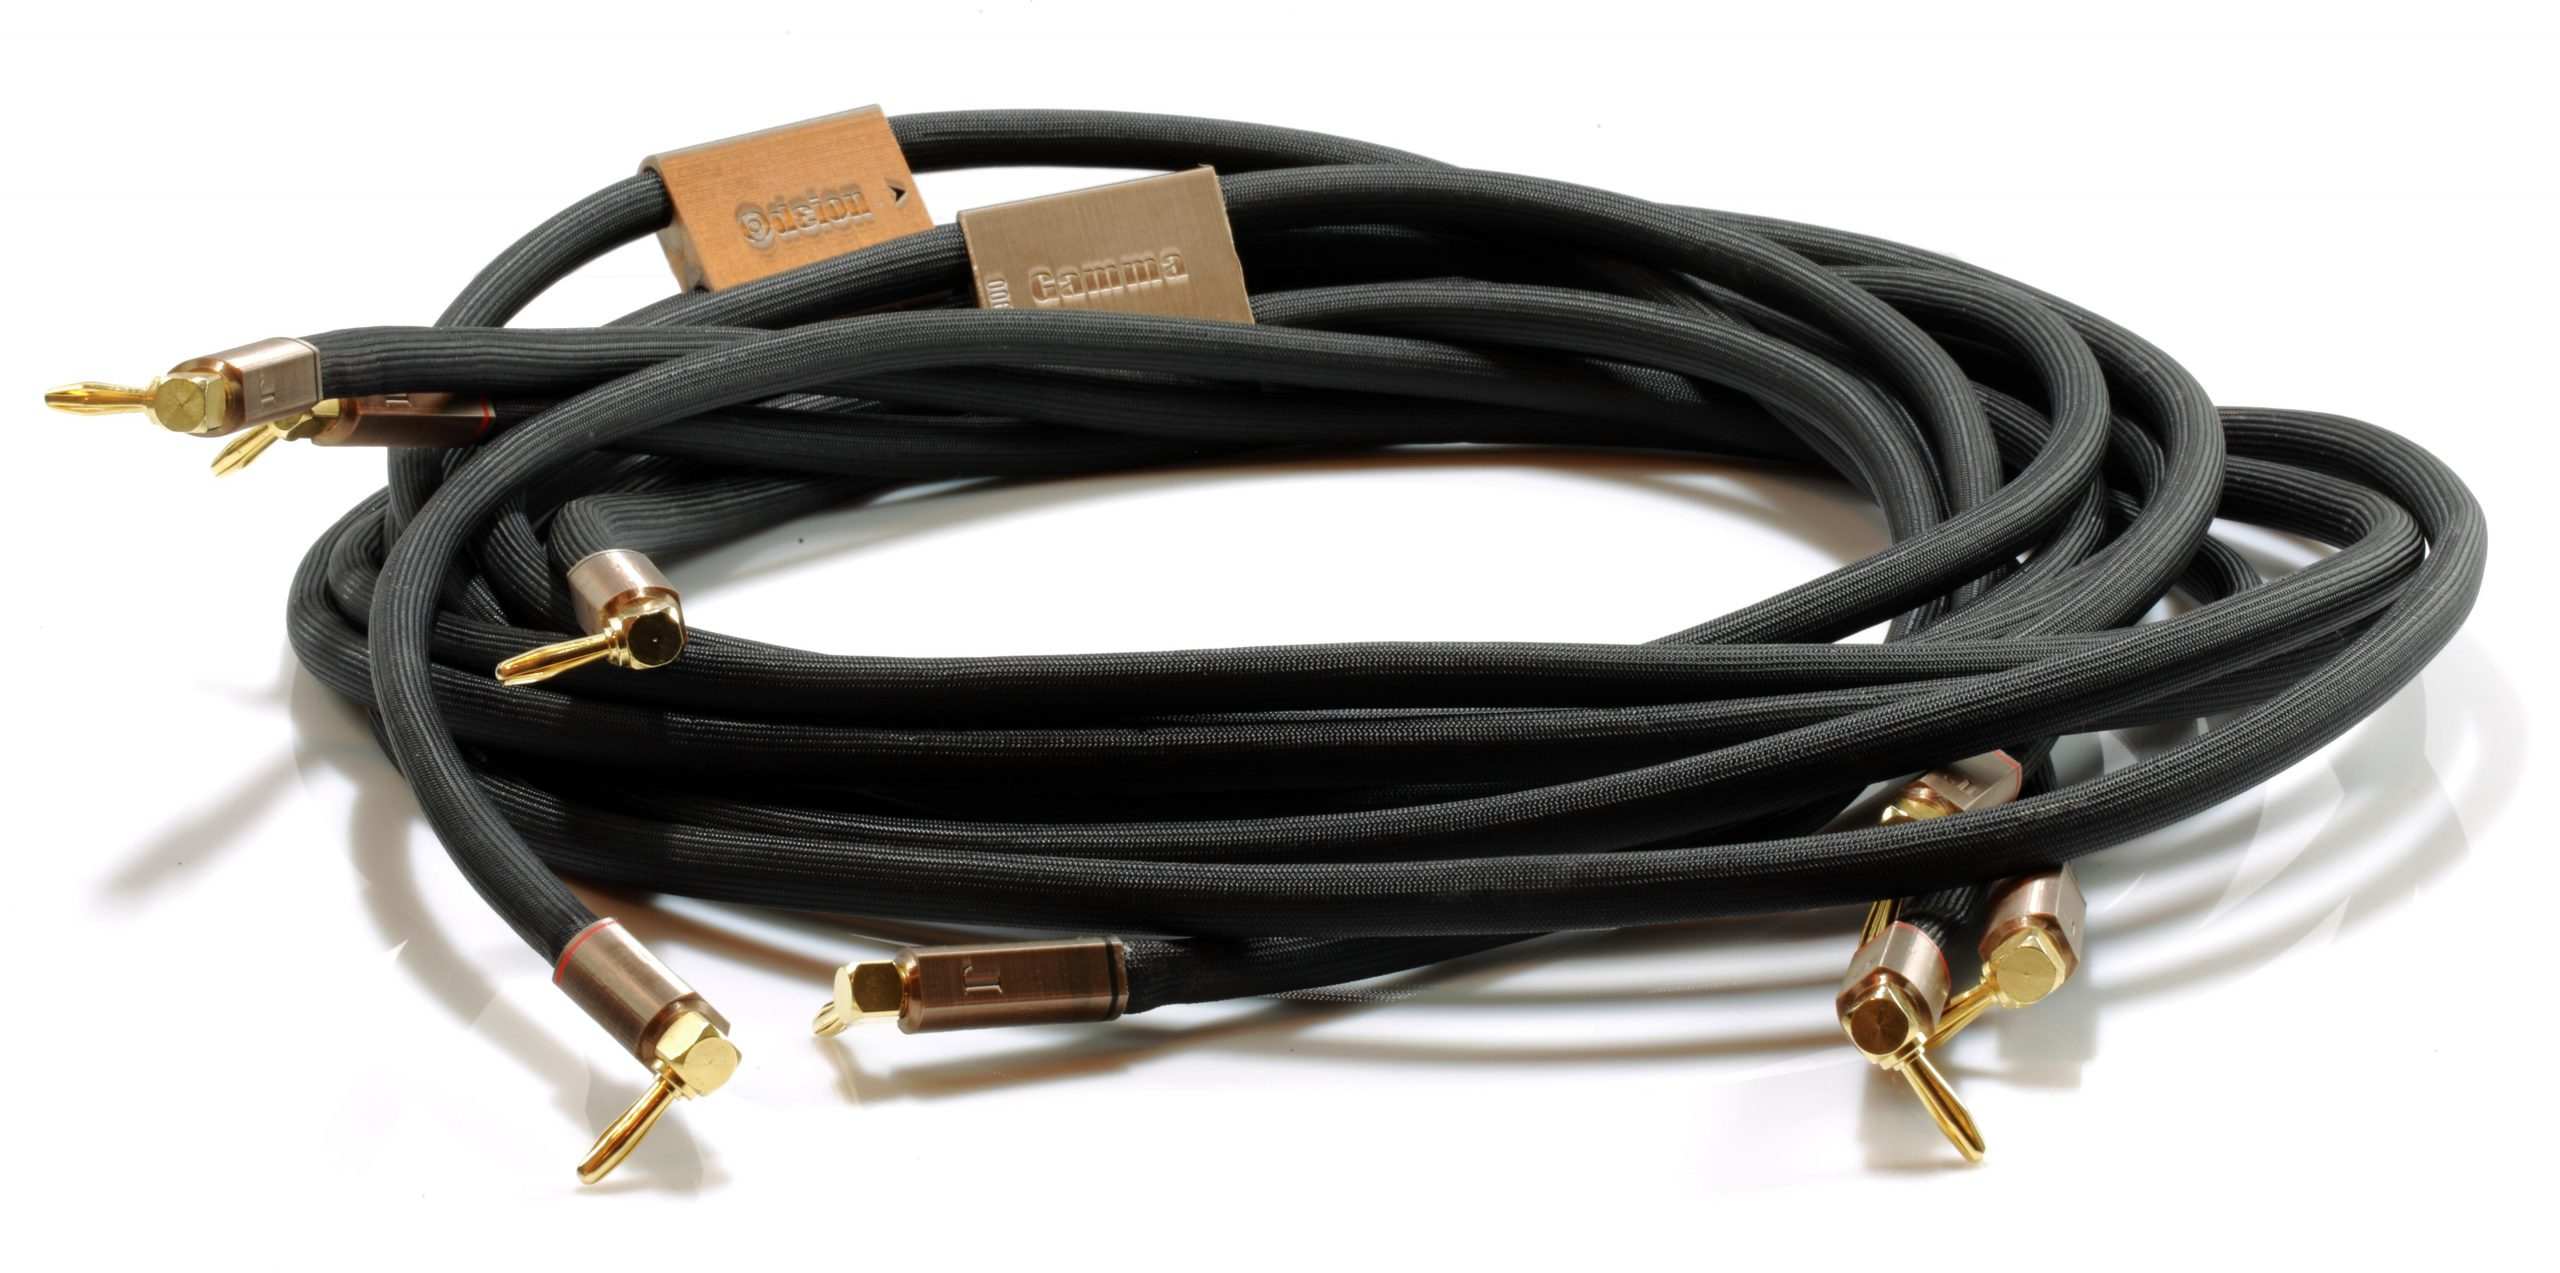 Gamma cable d'enceintes HP speaker odeion cables